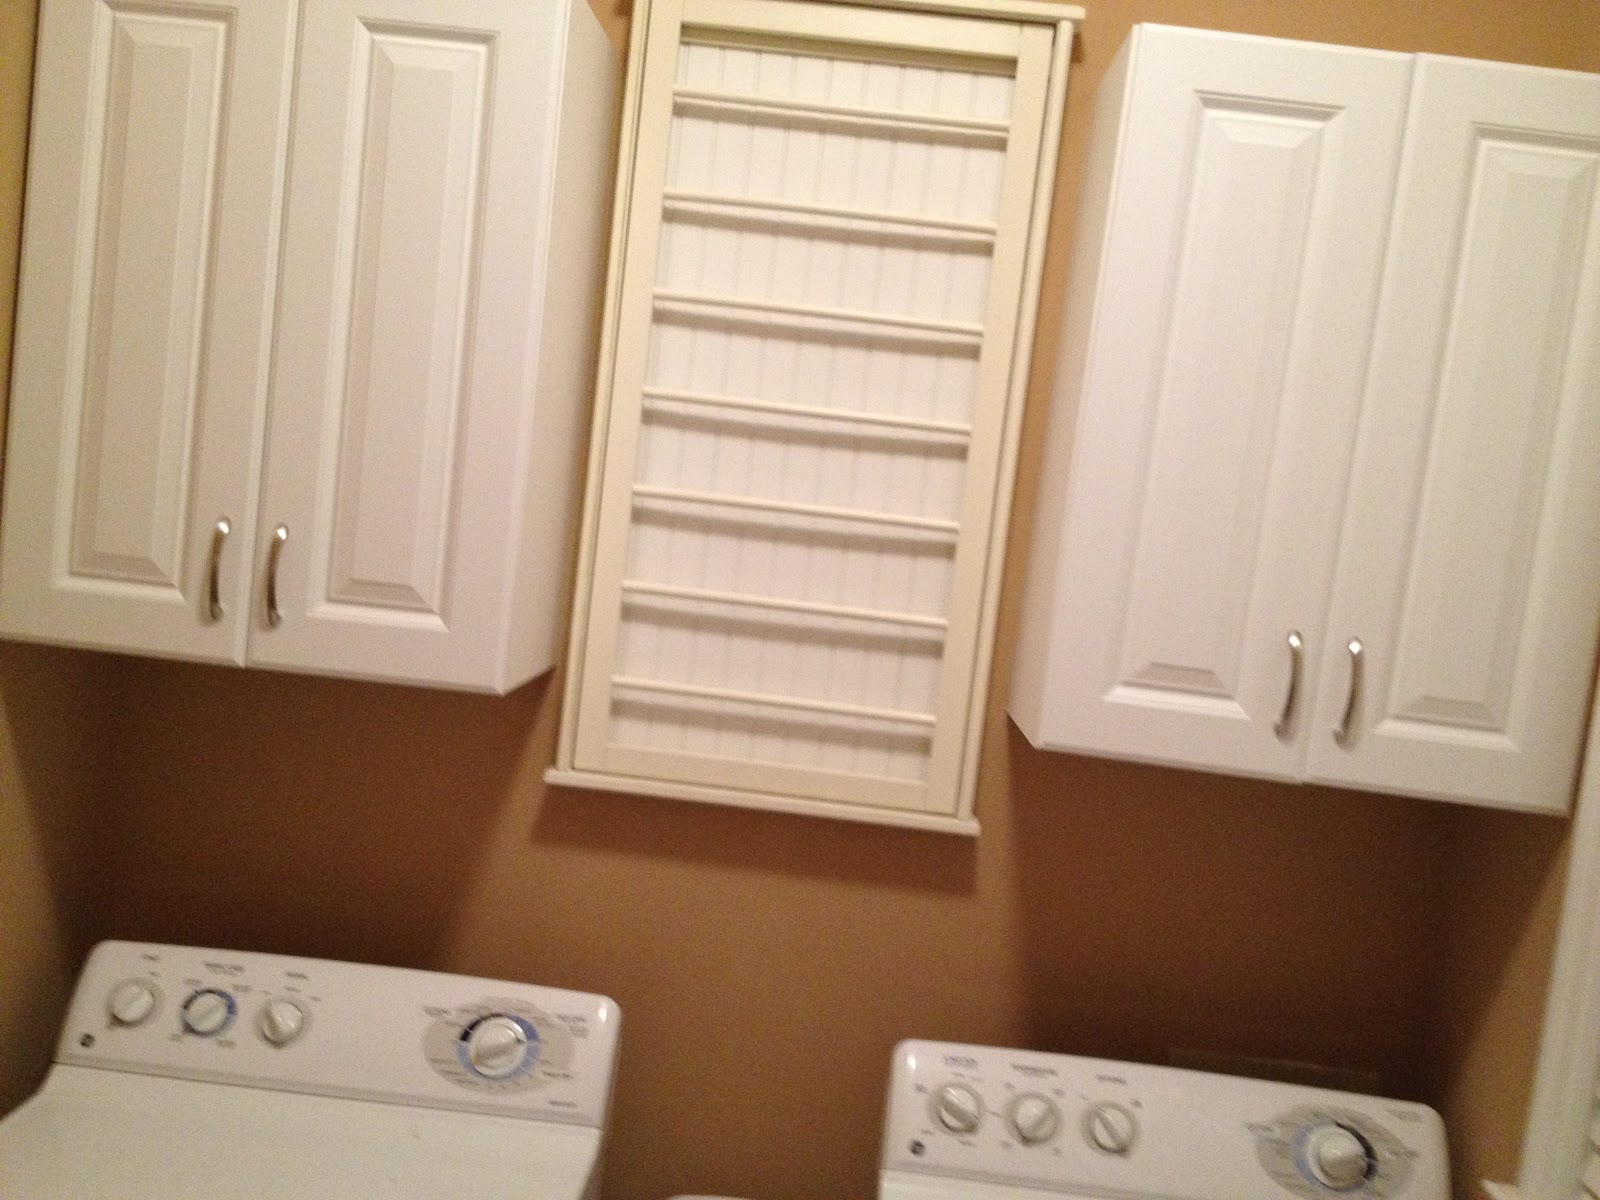 CasaLupoli: Laundry Room Update: Bye-Bye, Wire Mesh Shelves!